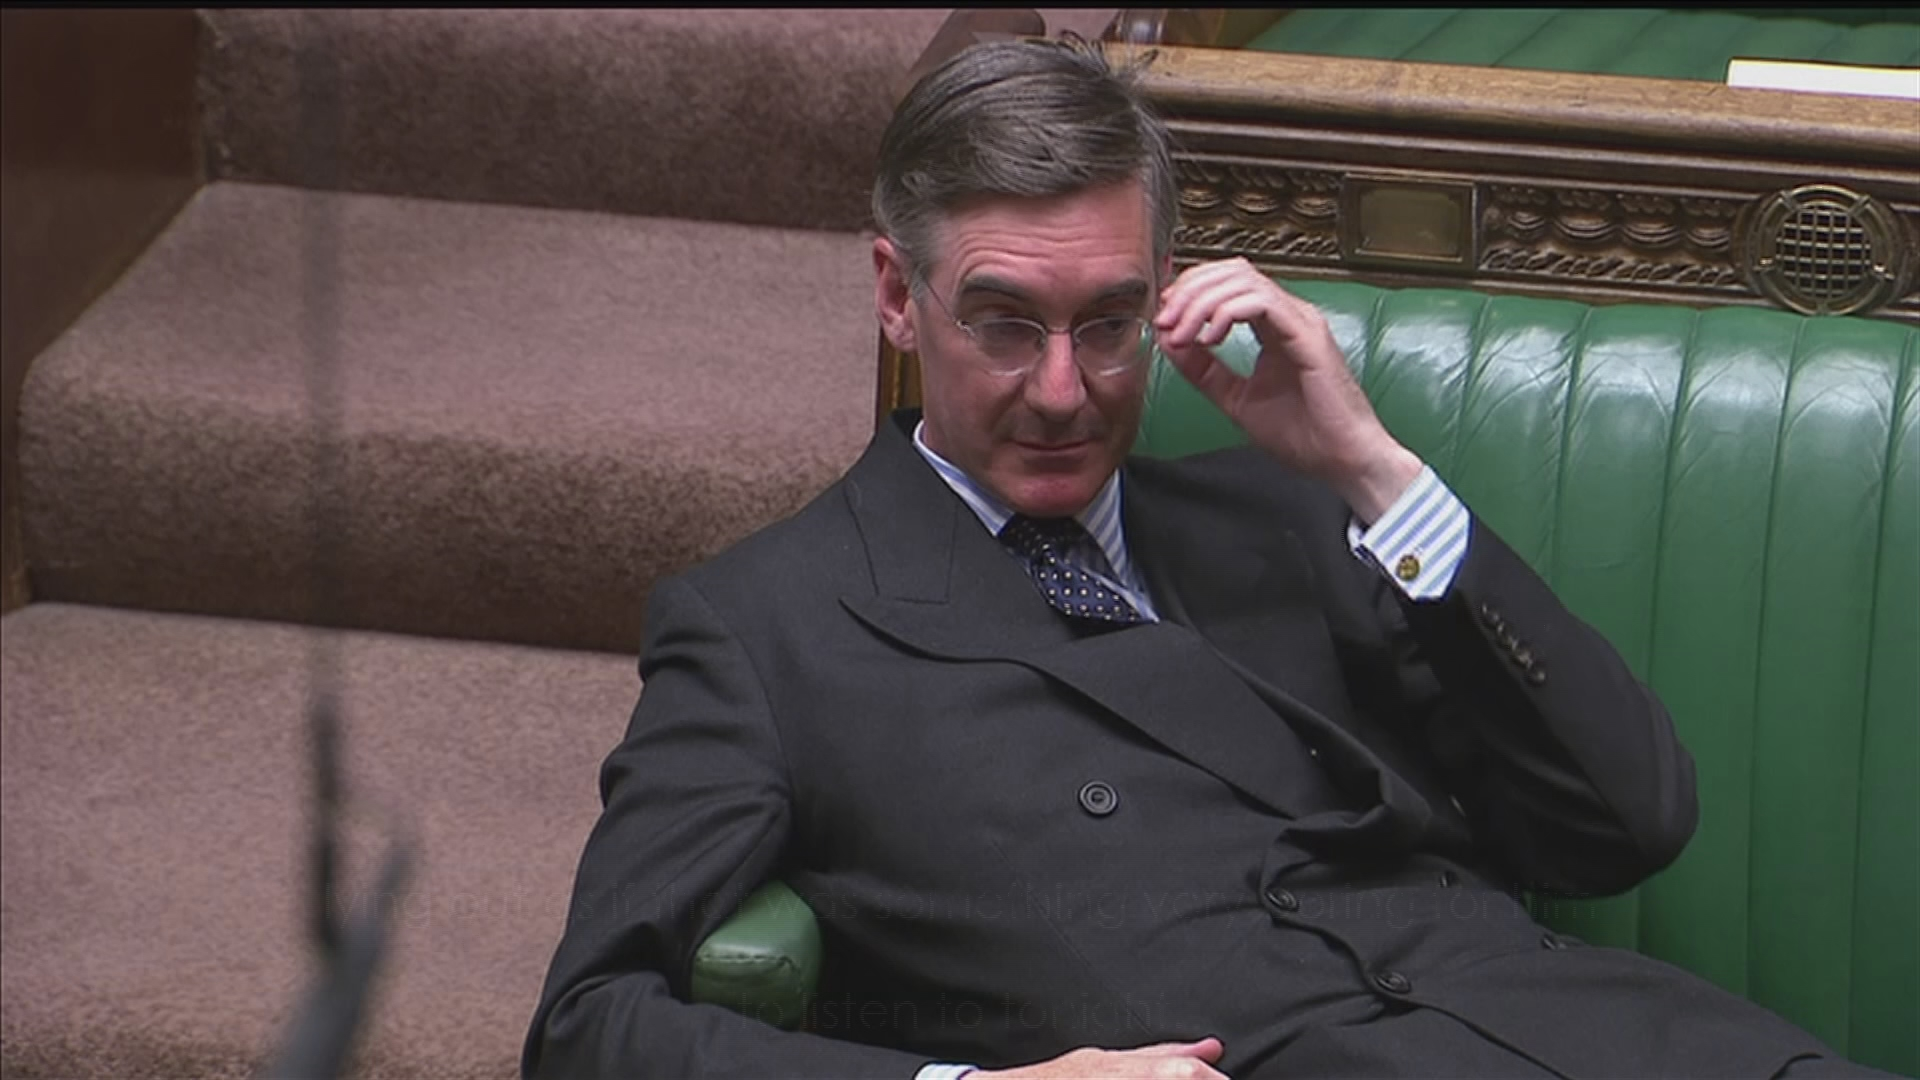 MPs Shout 'Sit Up' As Jacob Rees-Mogg Lounges Across The Commons Benches